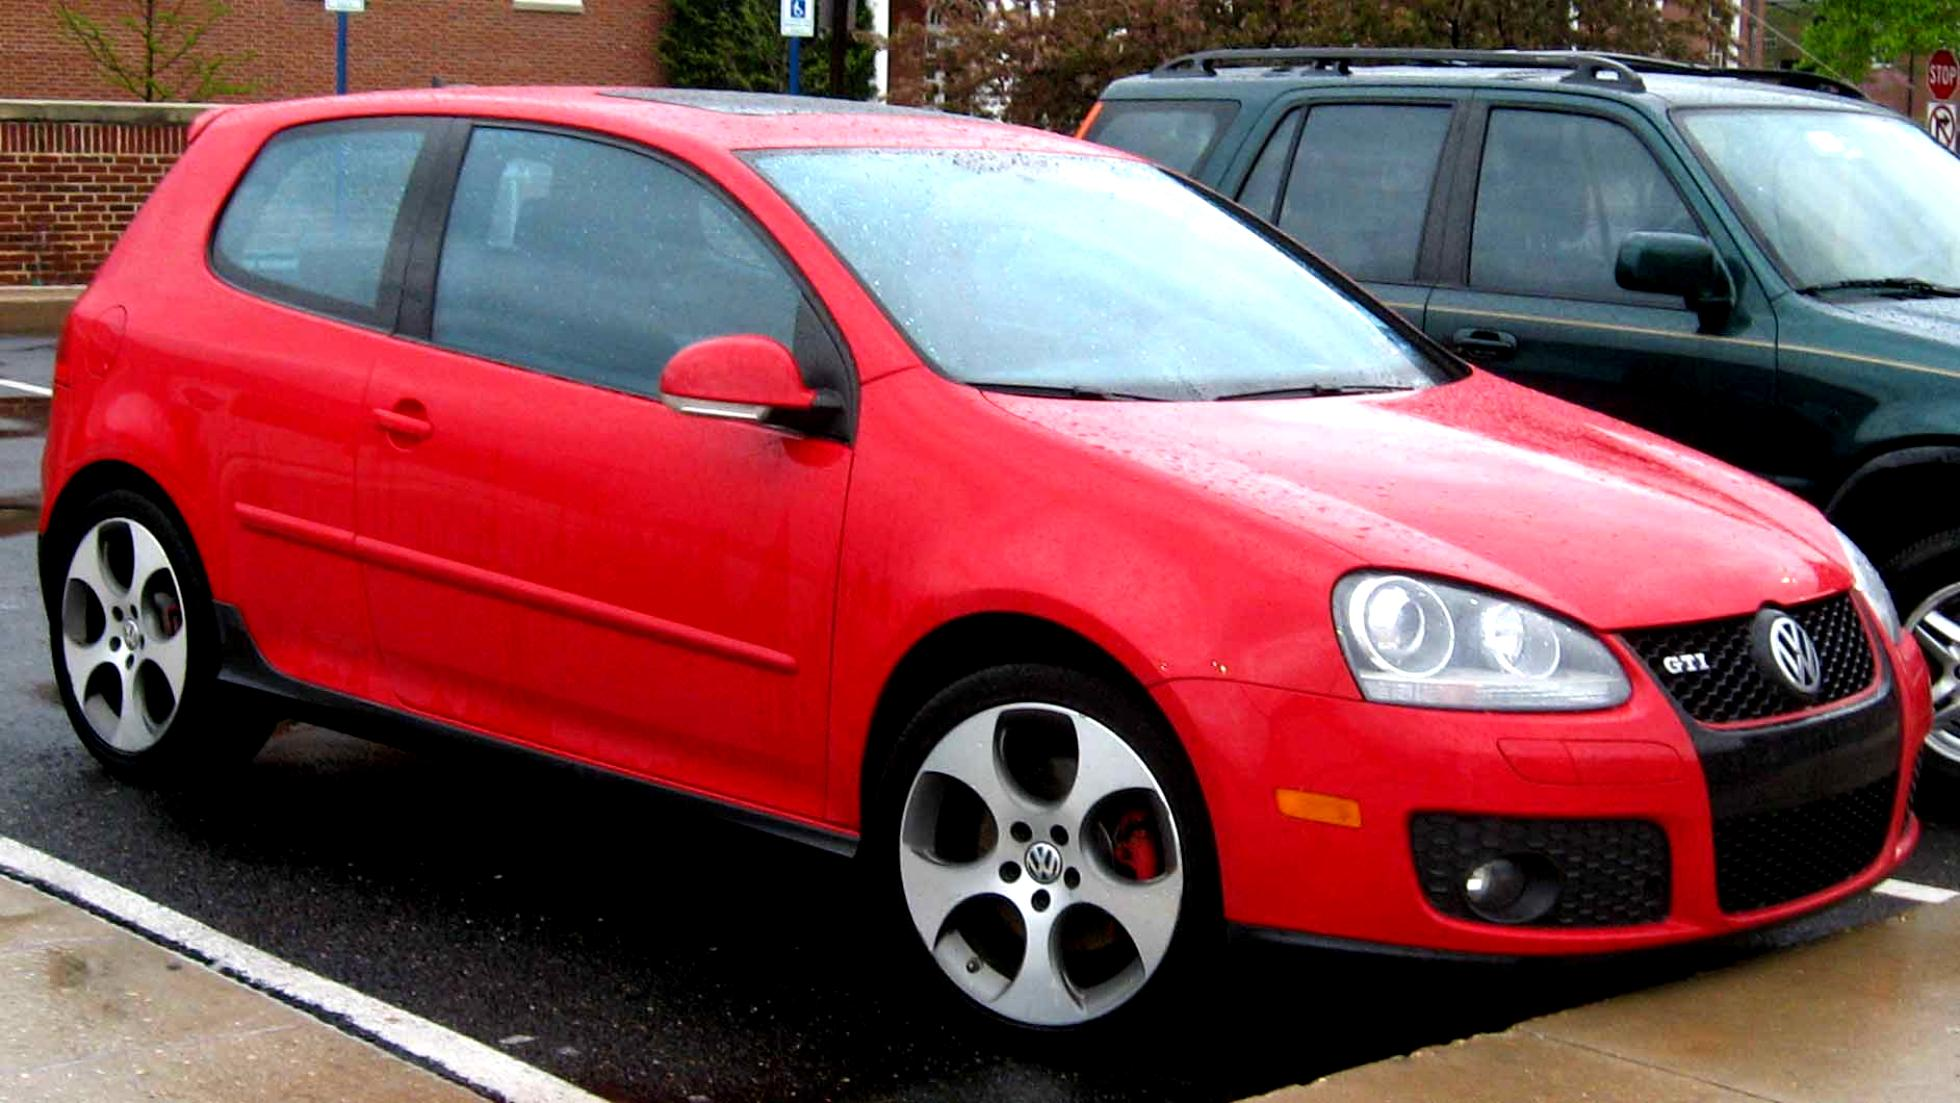 volkswagen golf v gti 3 doors 2004 photos 5 on. Black Bedroom Furniture Sets. Home Design Ideas